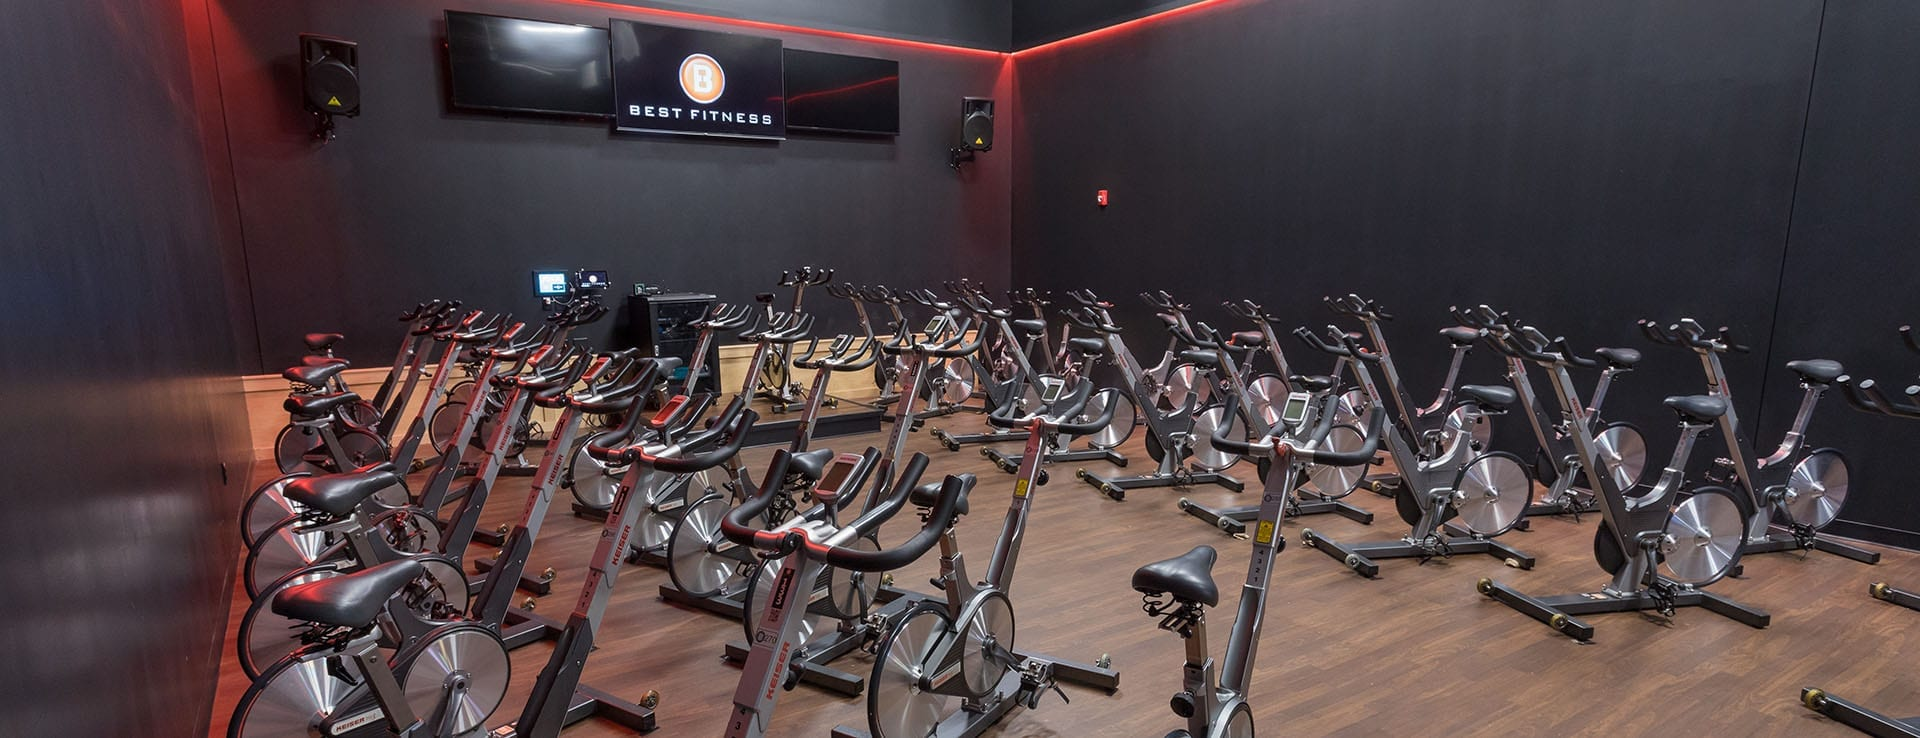 cycling studio at best gym near me